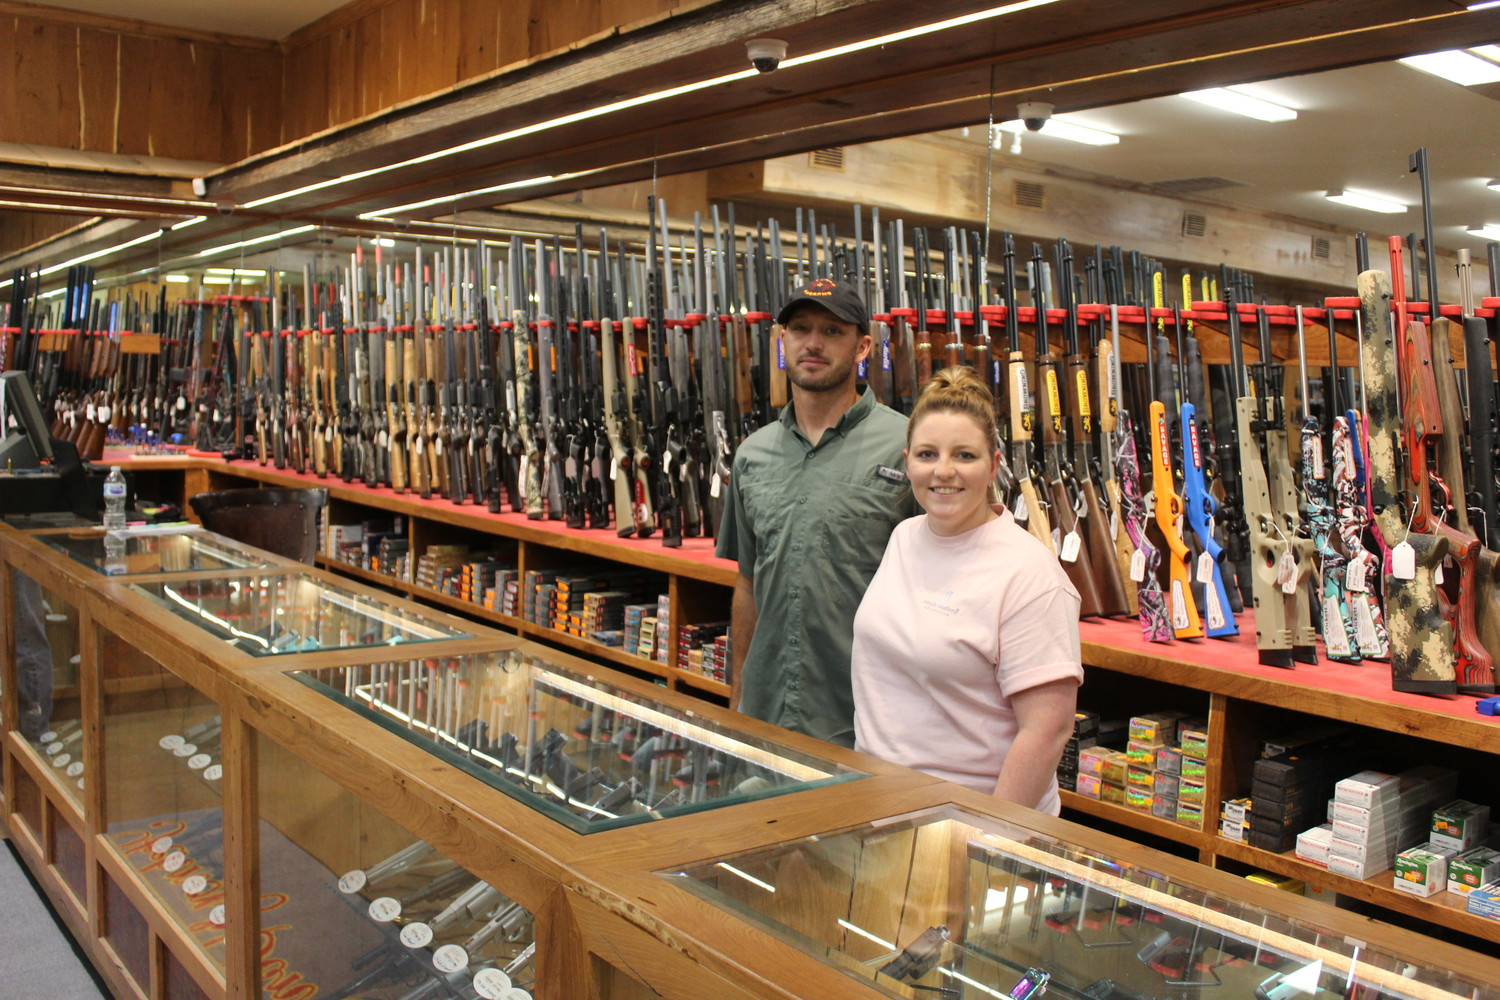 Brandon and Stephanie ran the awesome gun shop at the facility.